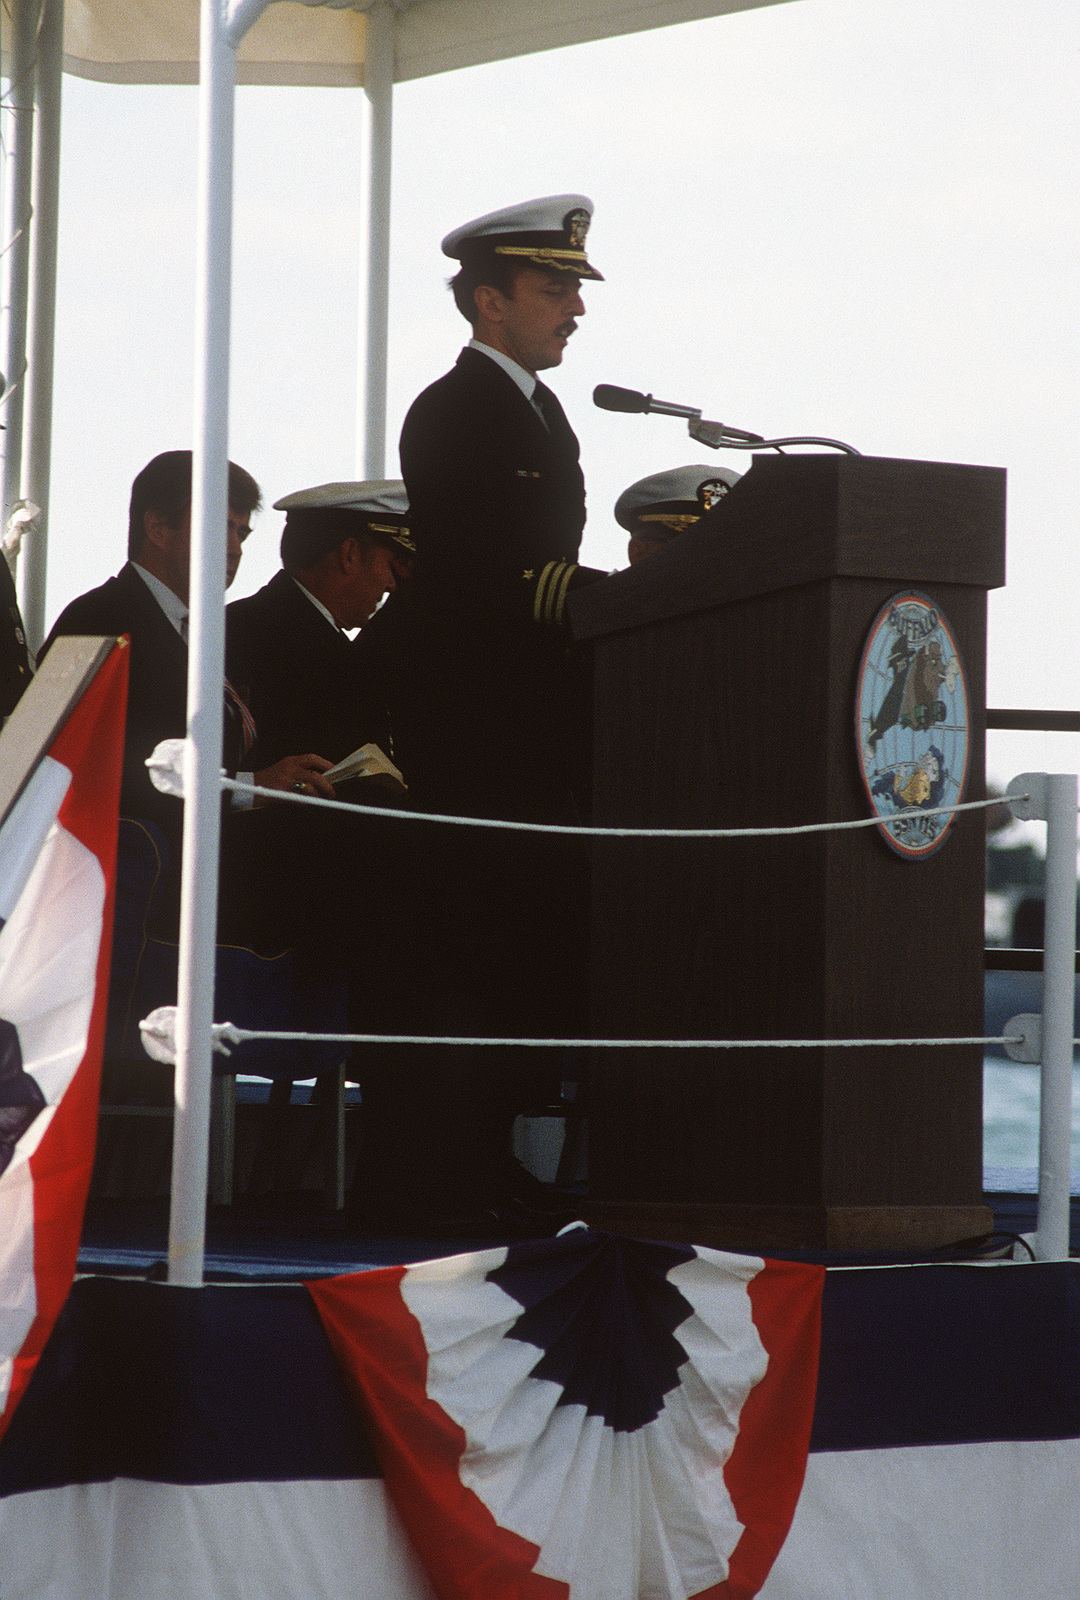 Commander (CDR) G. Michael Hewitt, commanding officer of the nuclear-powered attack submarine USS BUFFALO (SSN 715), speaks during the ship's commissioning ceremony